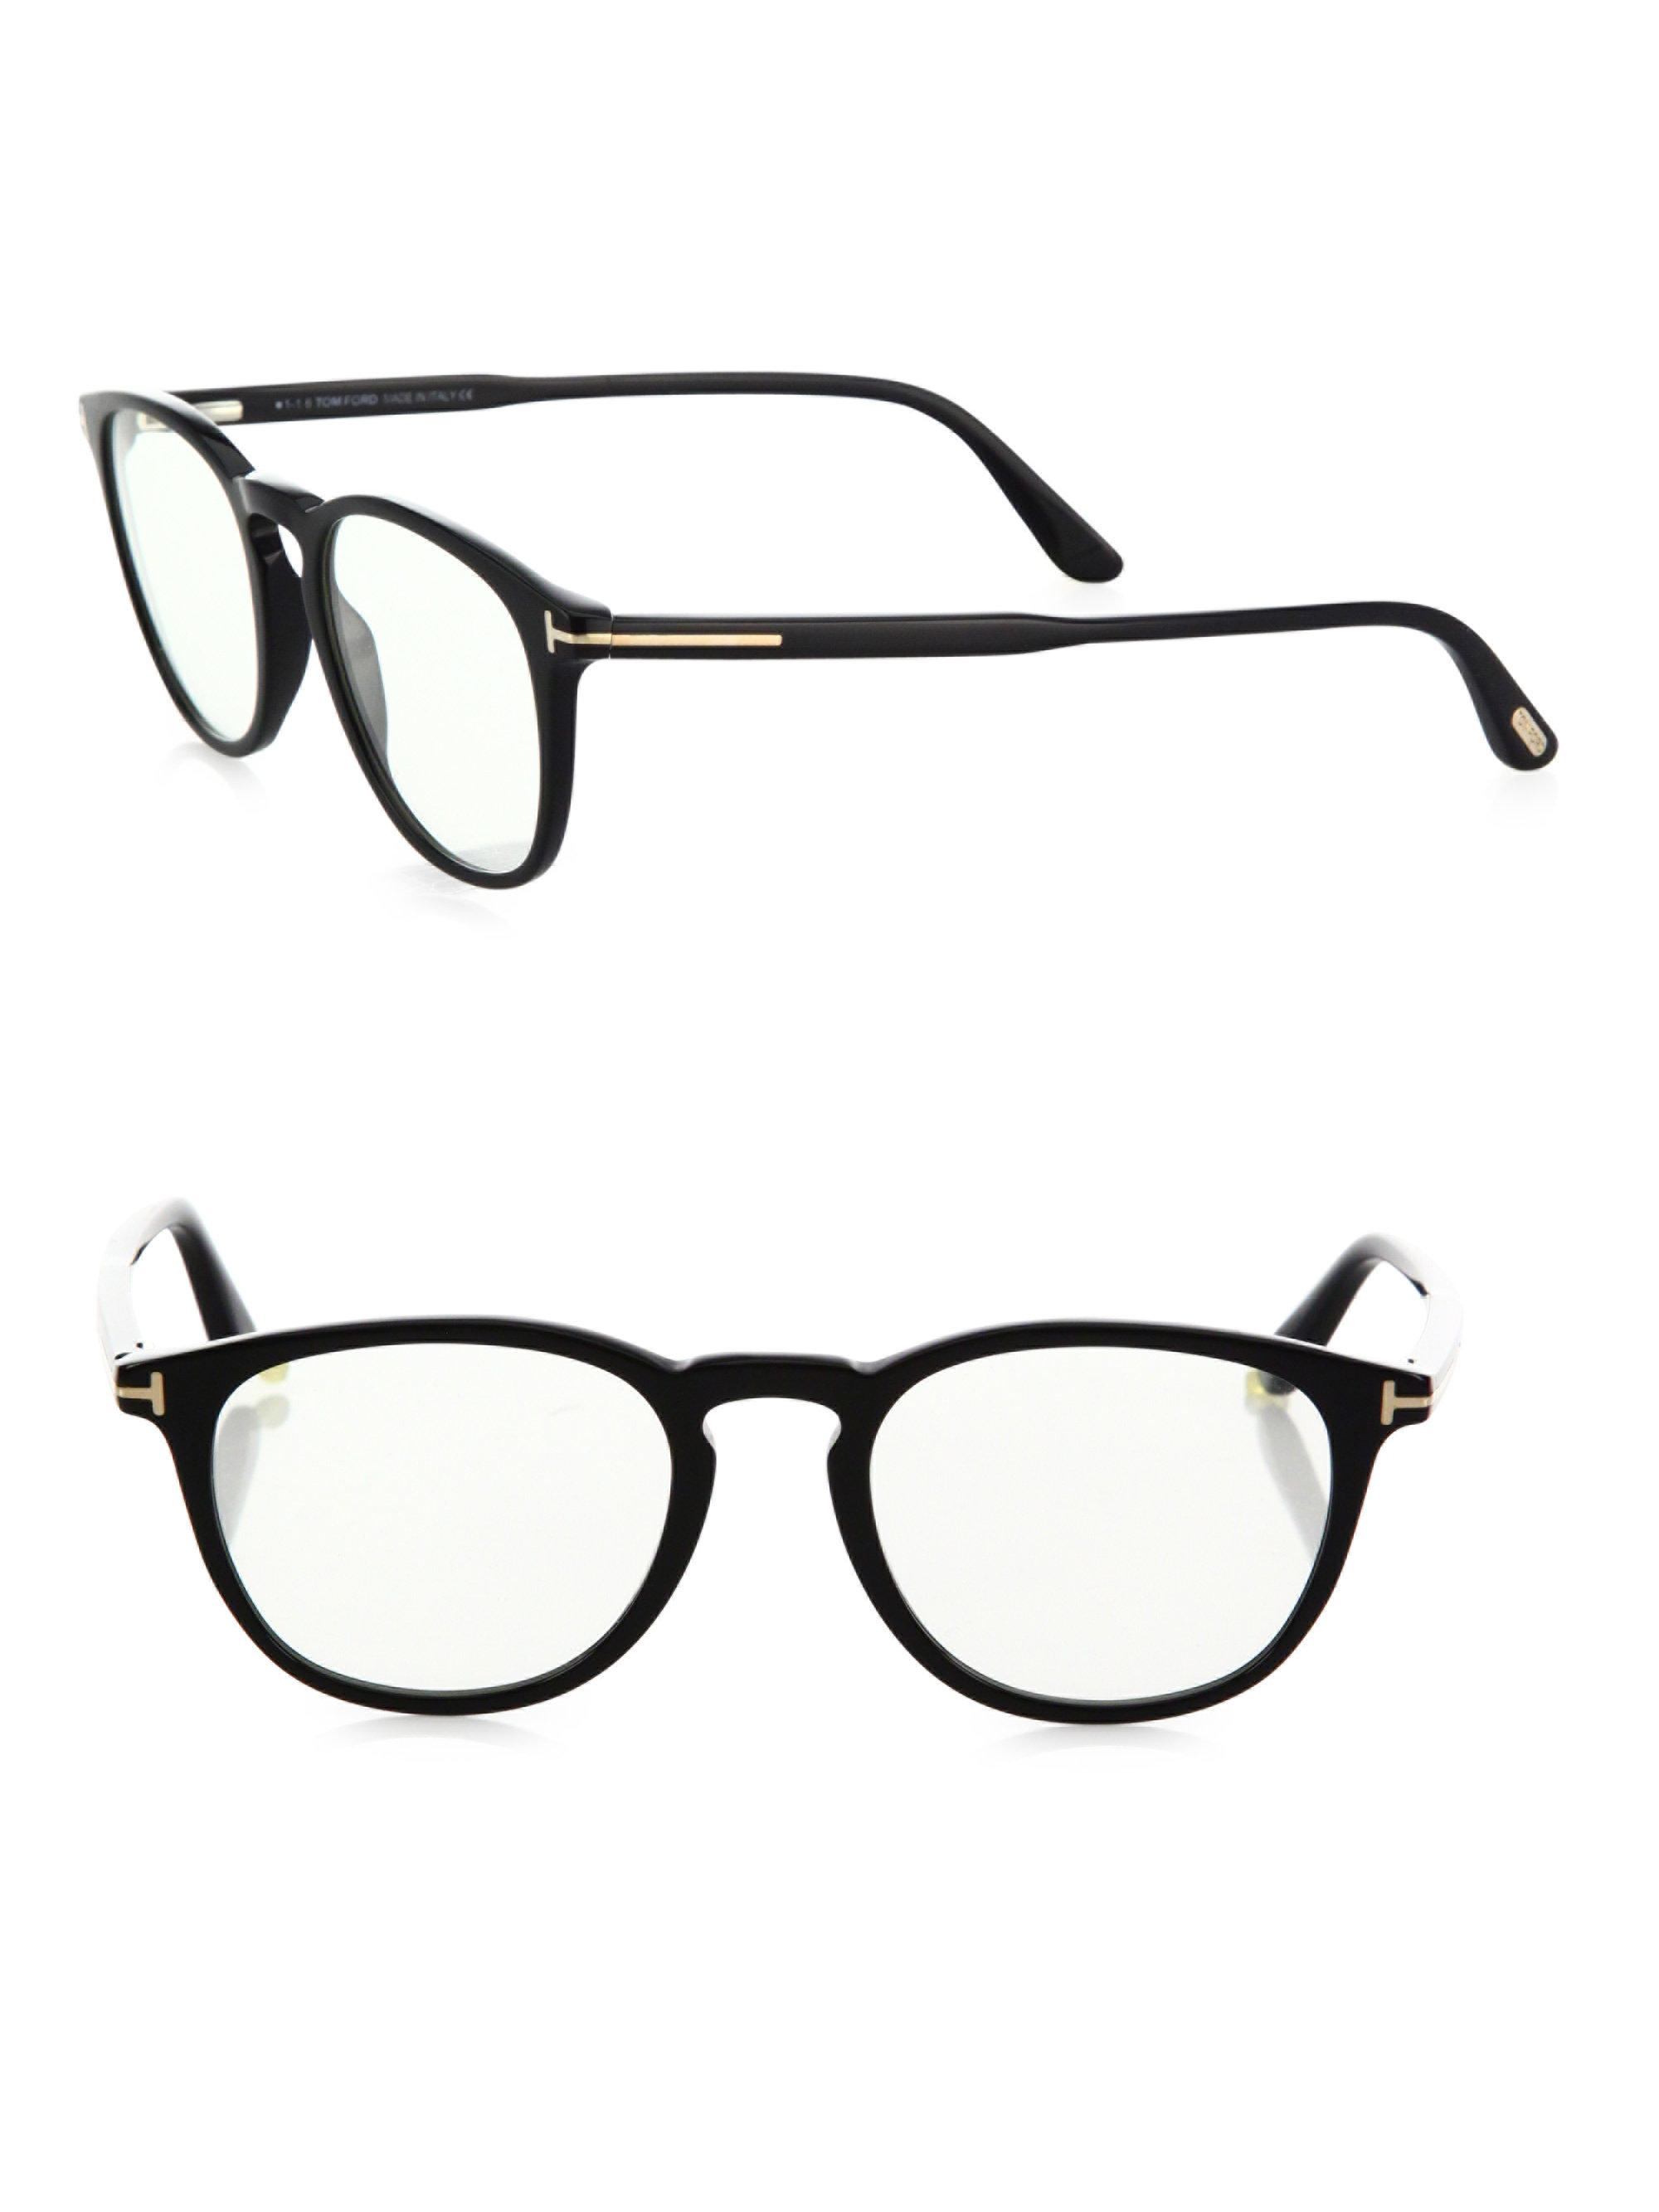 77bfd3559624 Tom Ford 50mm Round Optical Glasses & Clip-on Sunglasses in Blue - Lyst